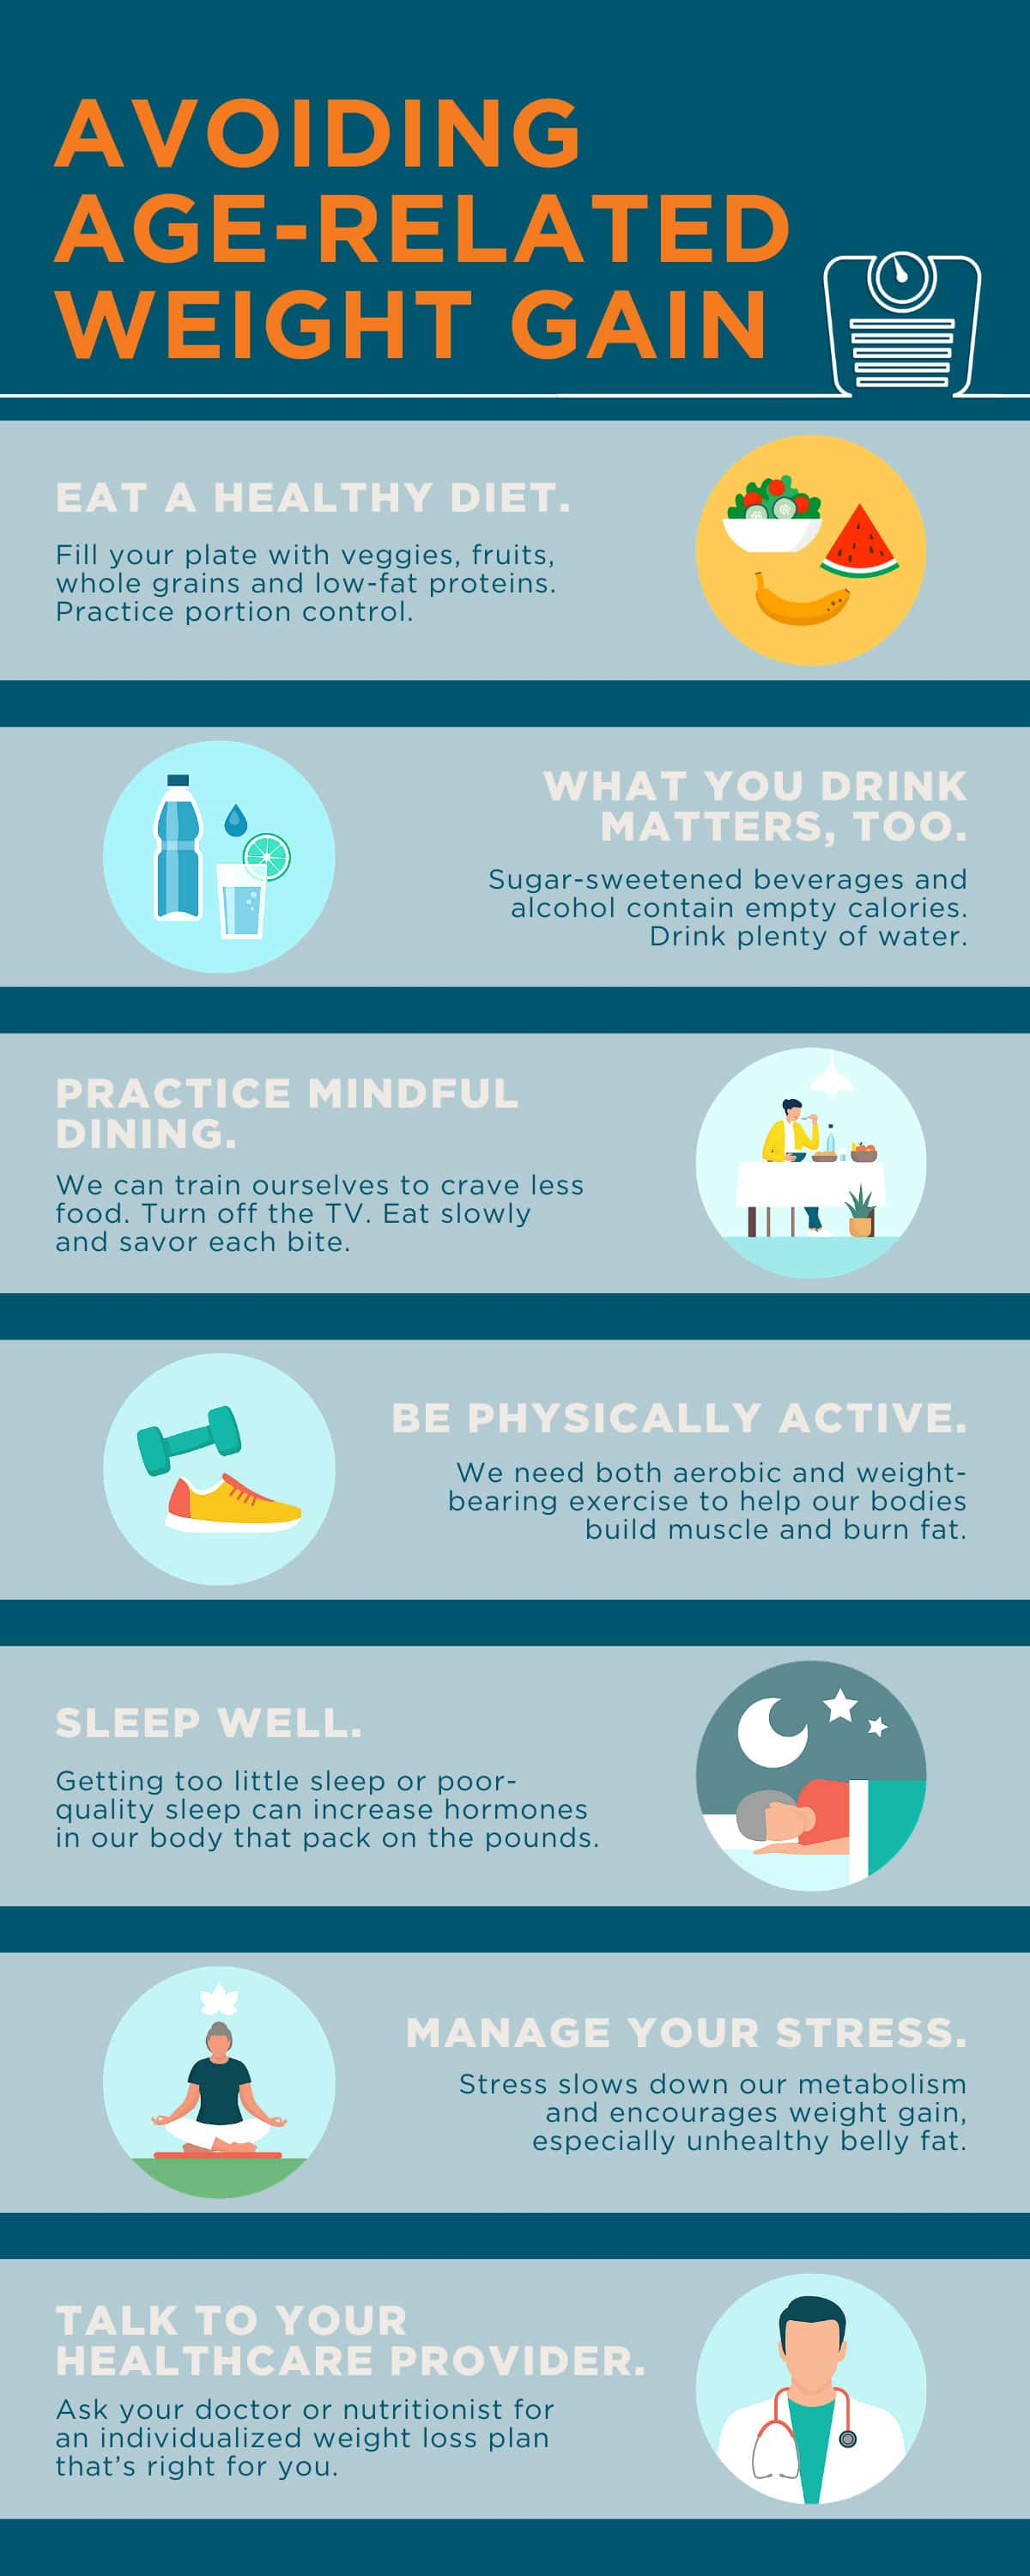 Avoiding Age-Related Weight Gain infographic